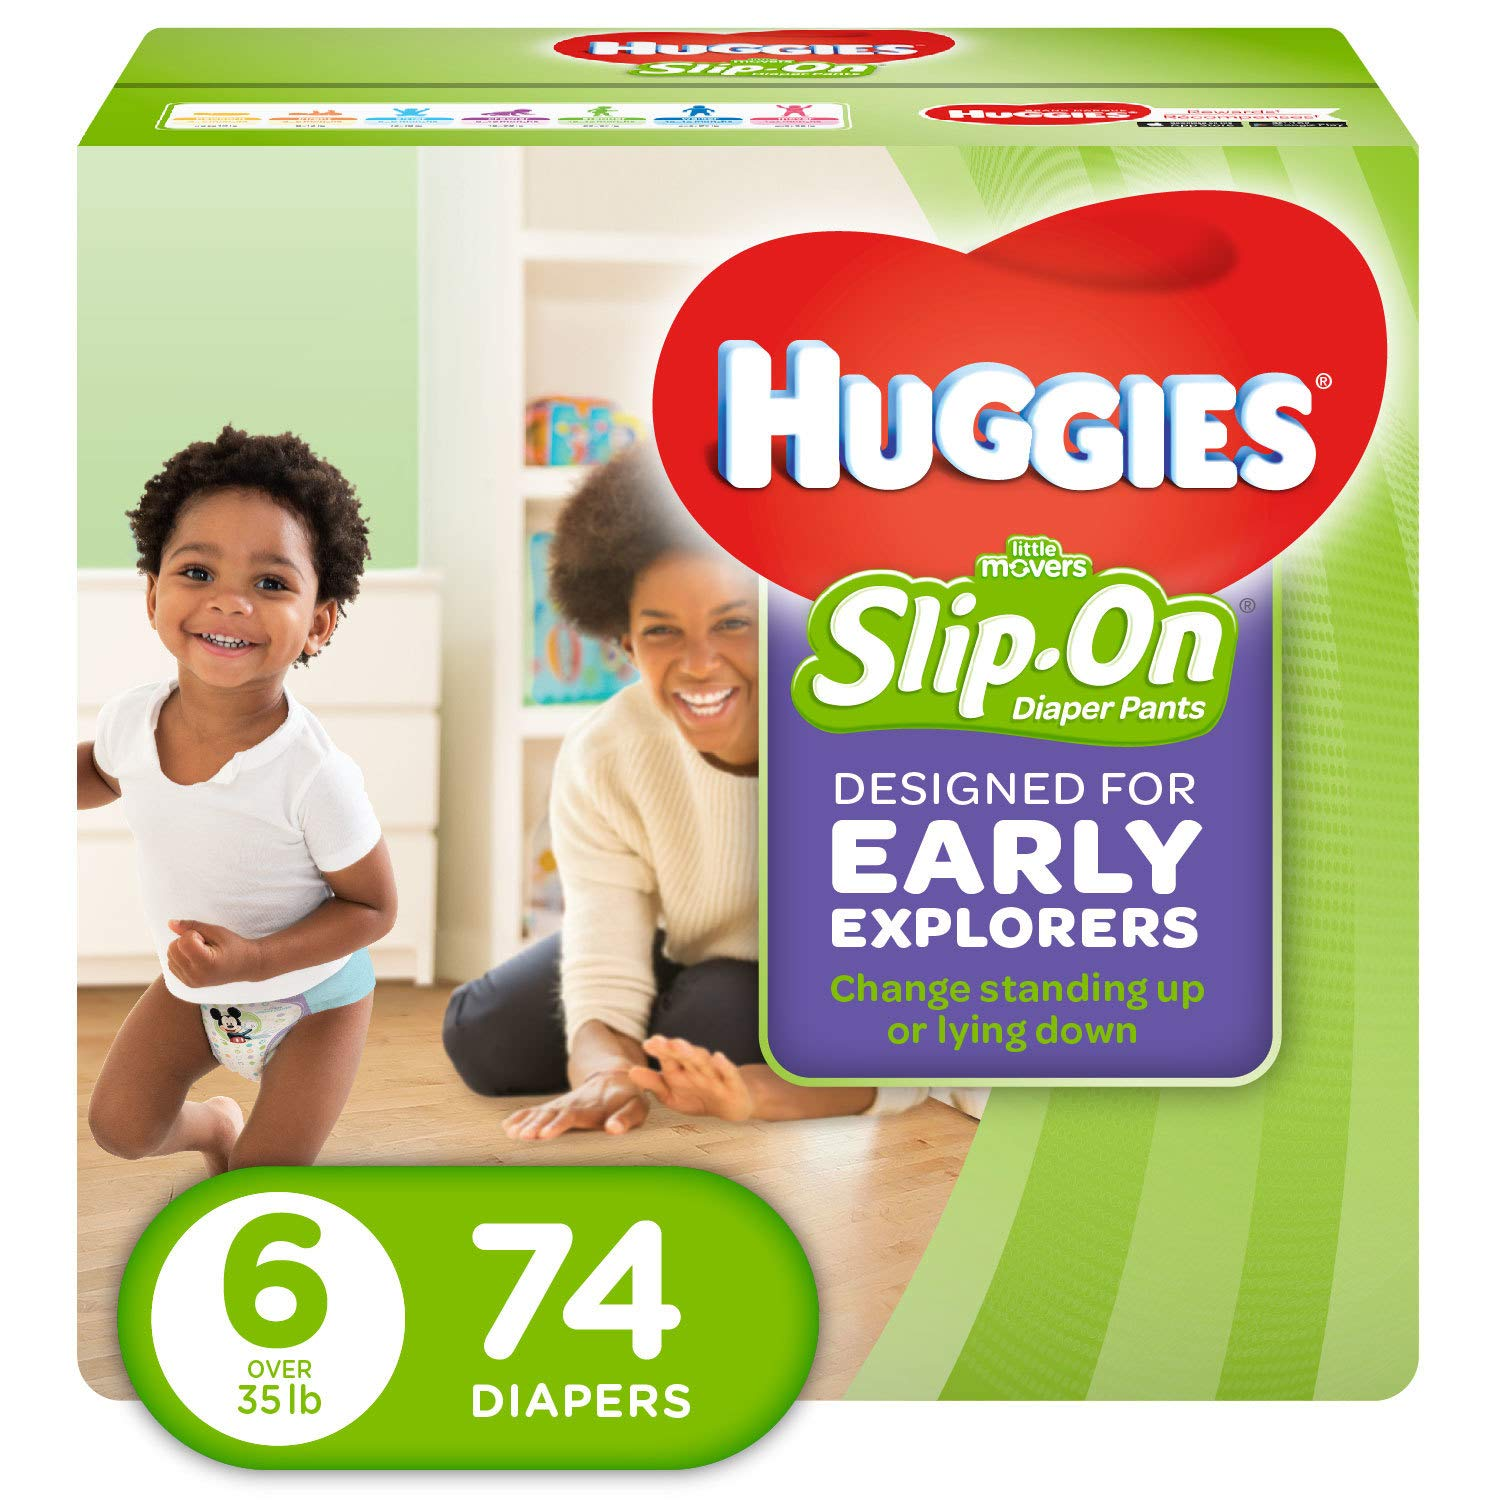 Huggies Little Movers Slip-On Diapers, Size 6, 74 Count